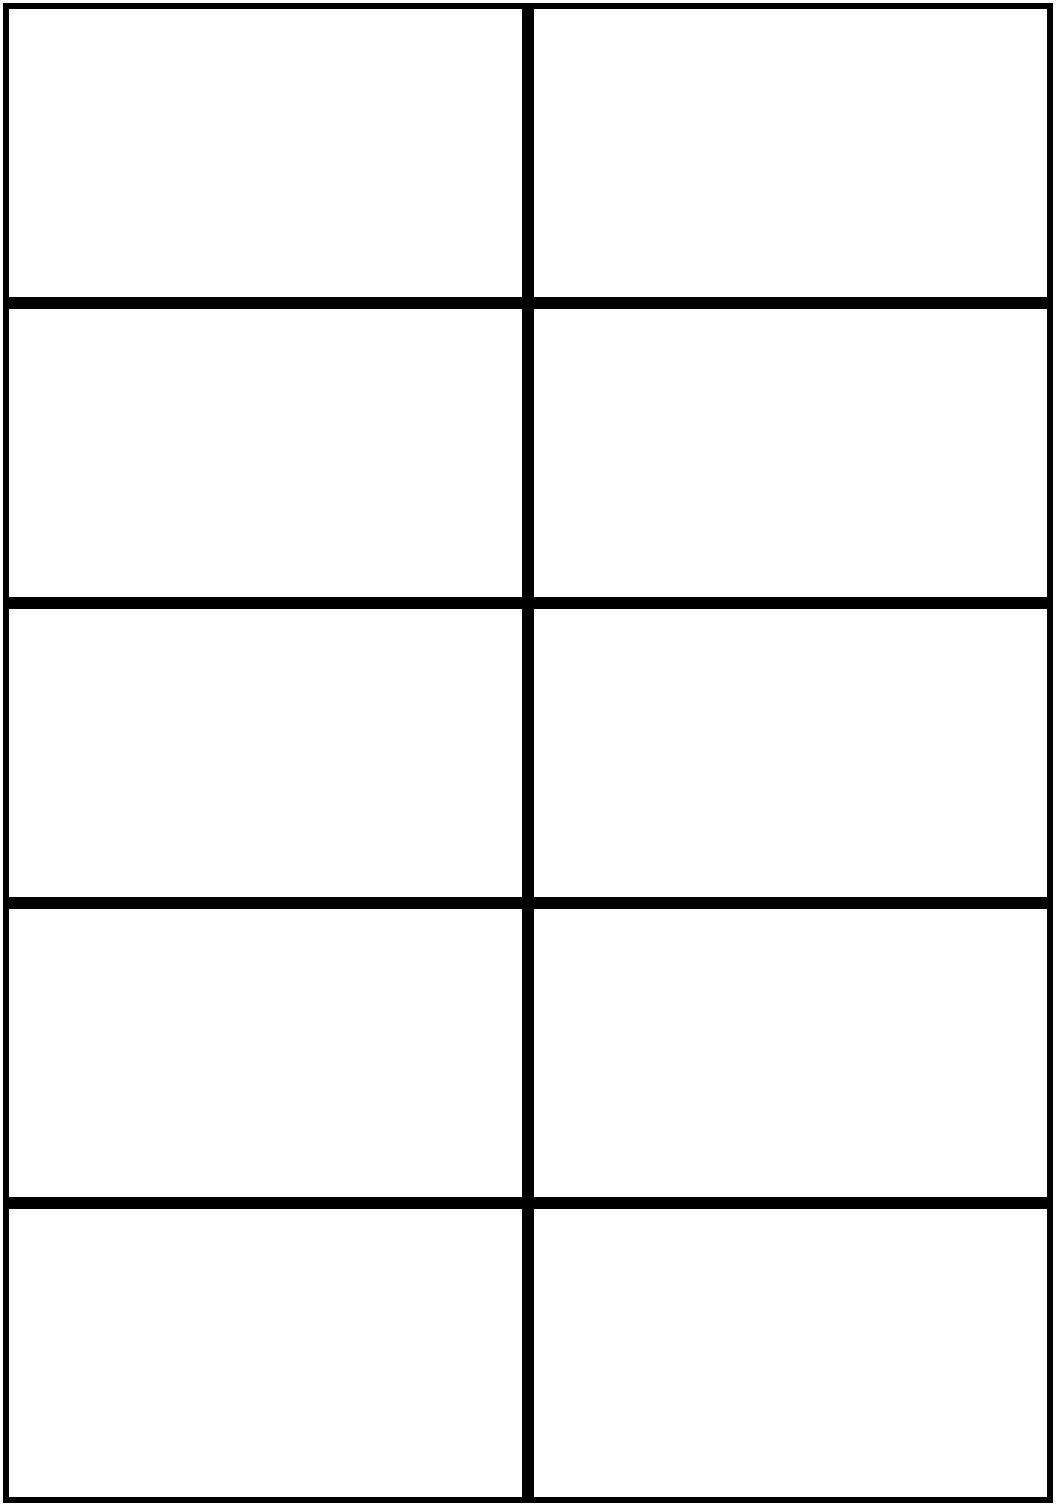 Image Result For Flashcards Template Word | Worksheets | Printable - Free Printable Business Cards